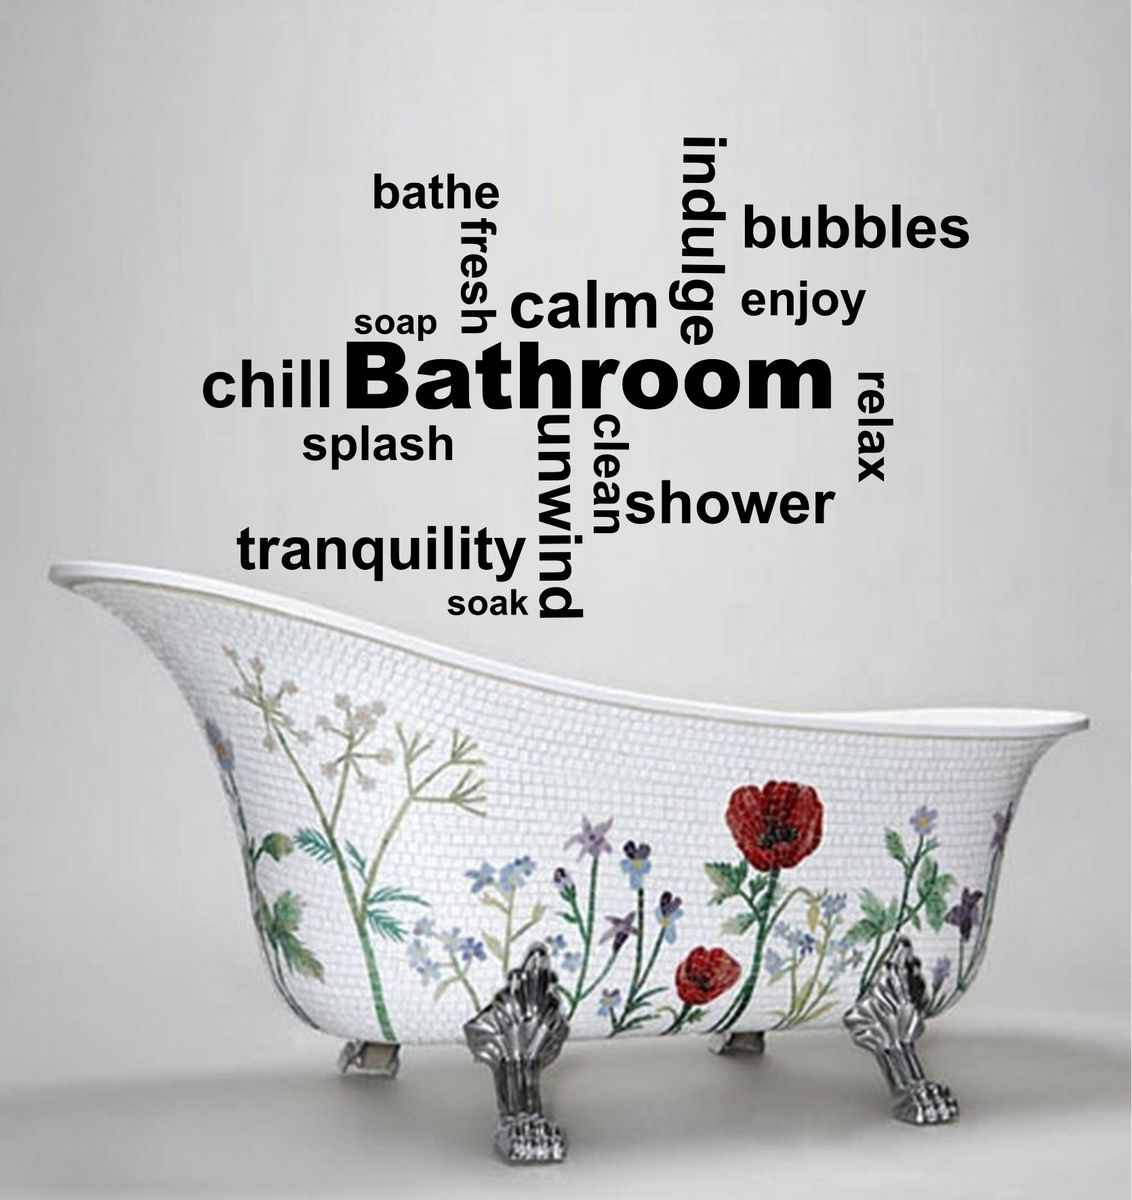 Bathroom wall art stickers - Vinyl Lady Bathroom Inspirational Words Wall Art Stickers Black